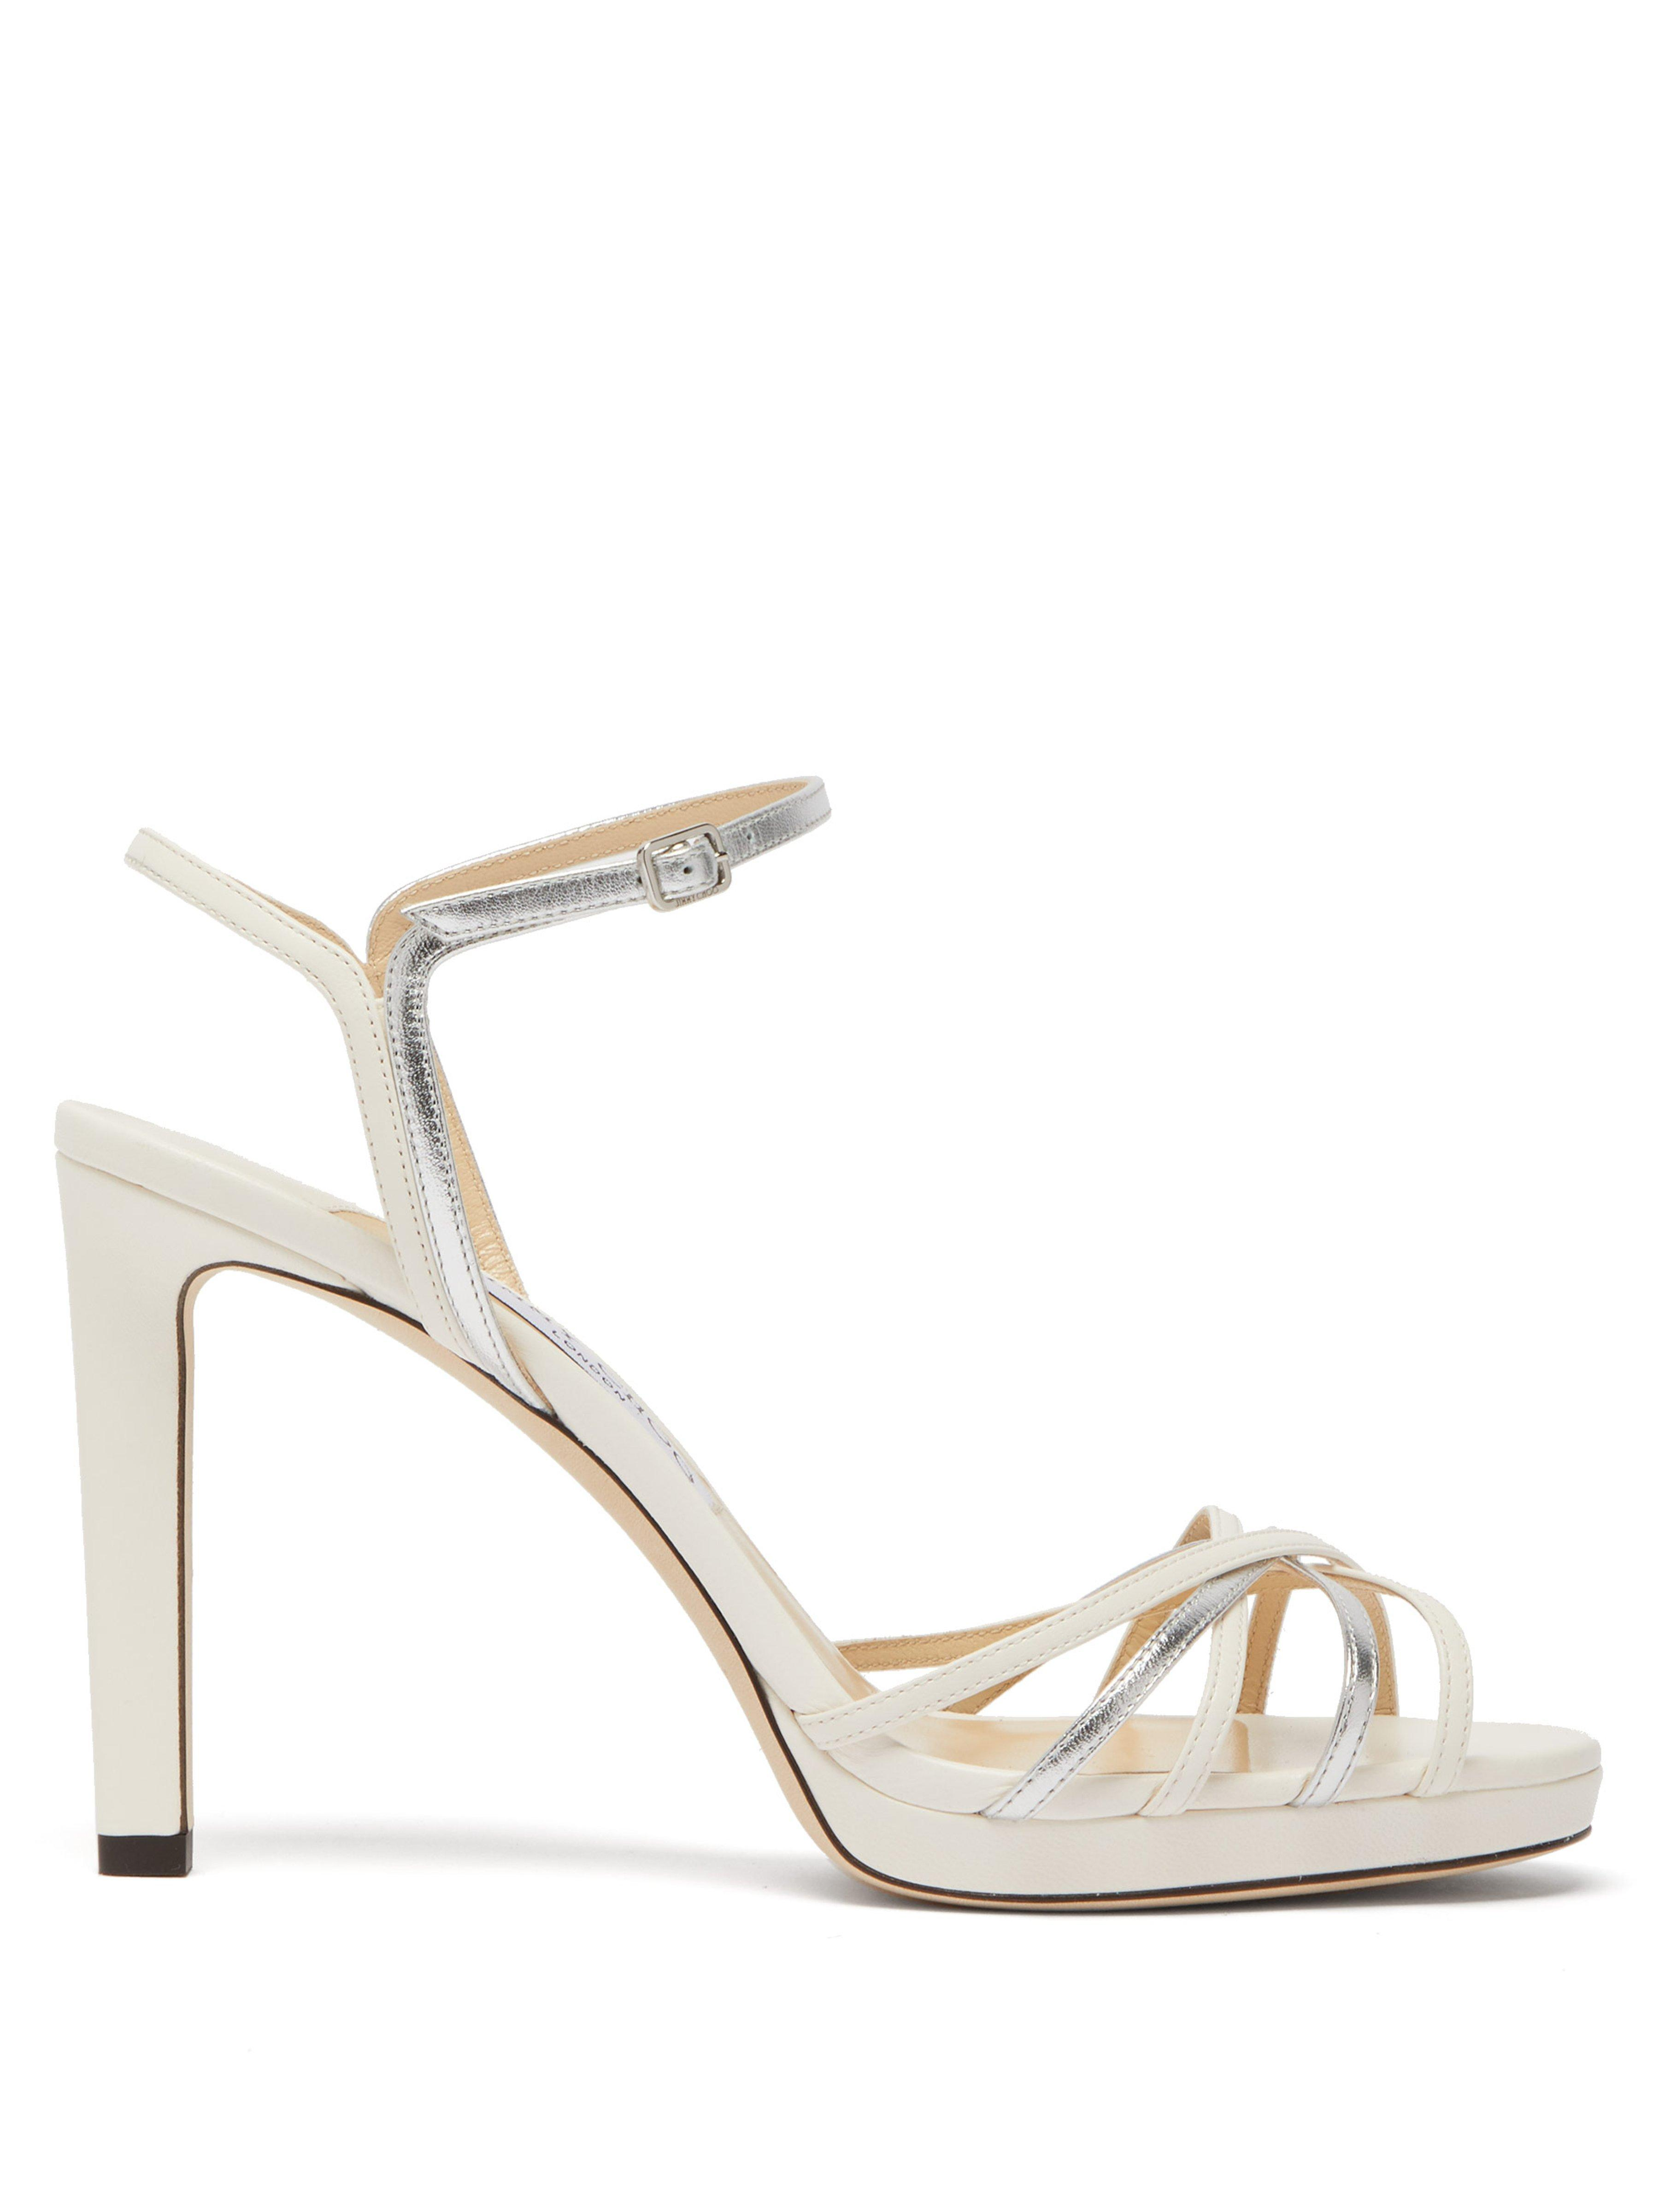 de526b9588 Jimmy Choo Lilah 100 Metallic Leather Sandals in Metallic - Lyst